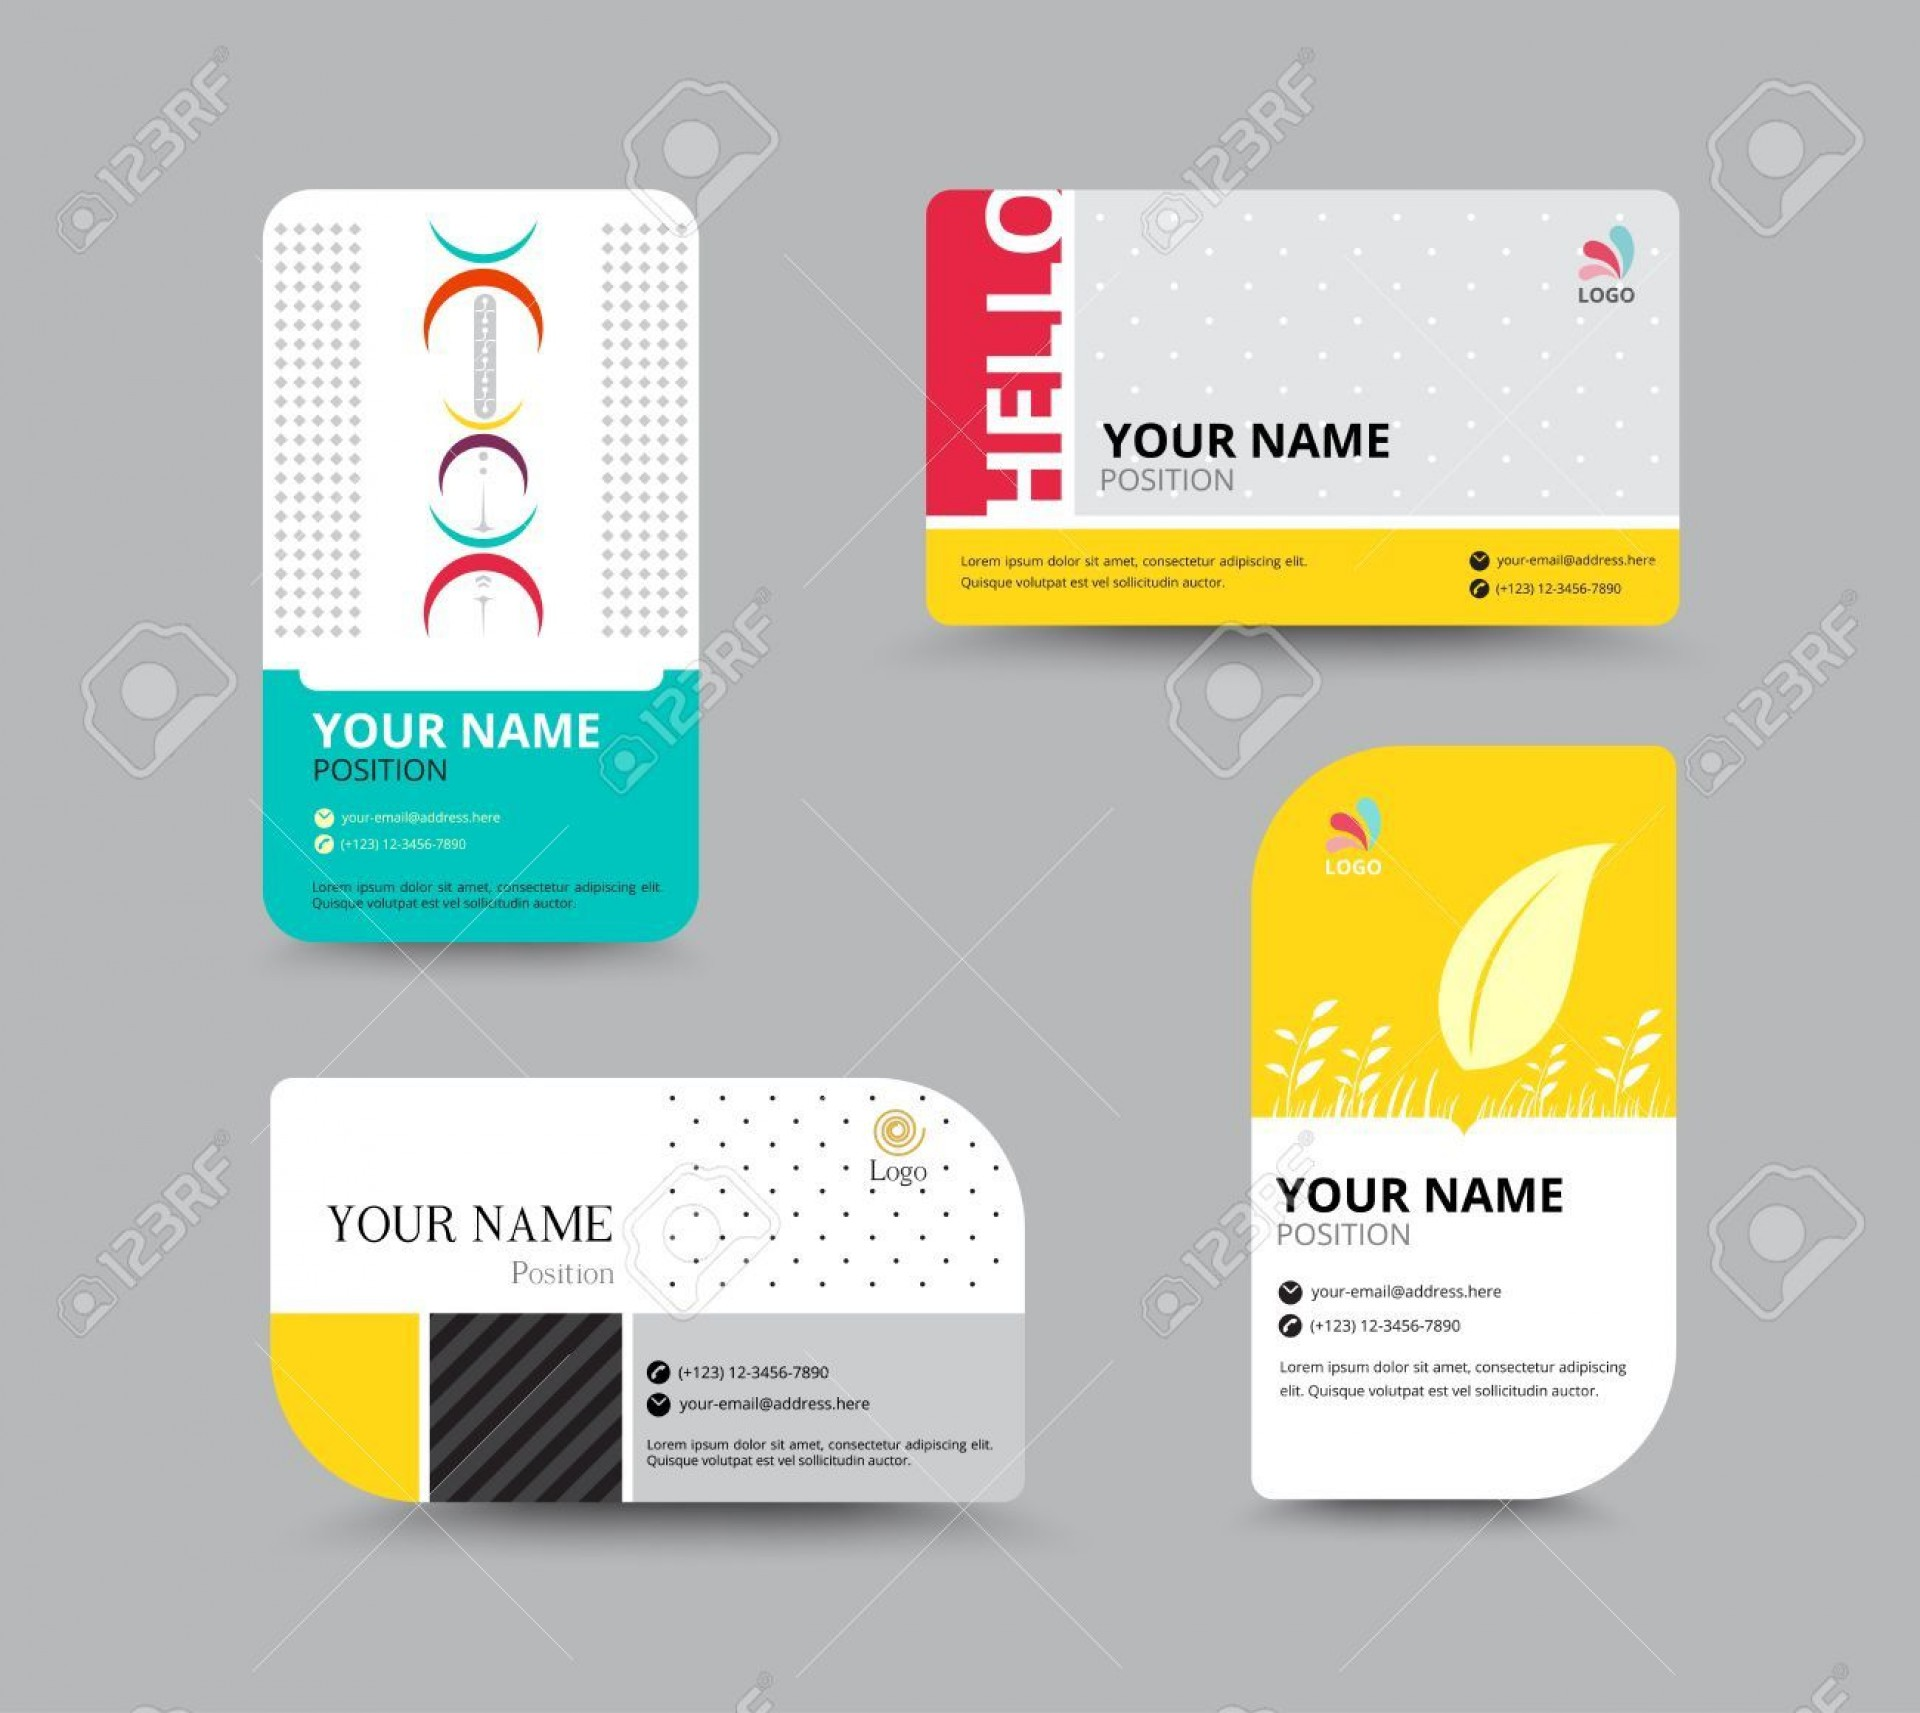 004 Magnificent Name Tag Design Template Example  Free Download Psd1920